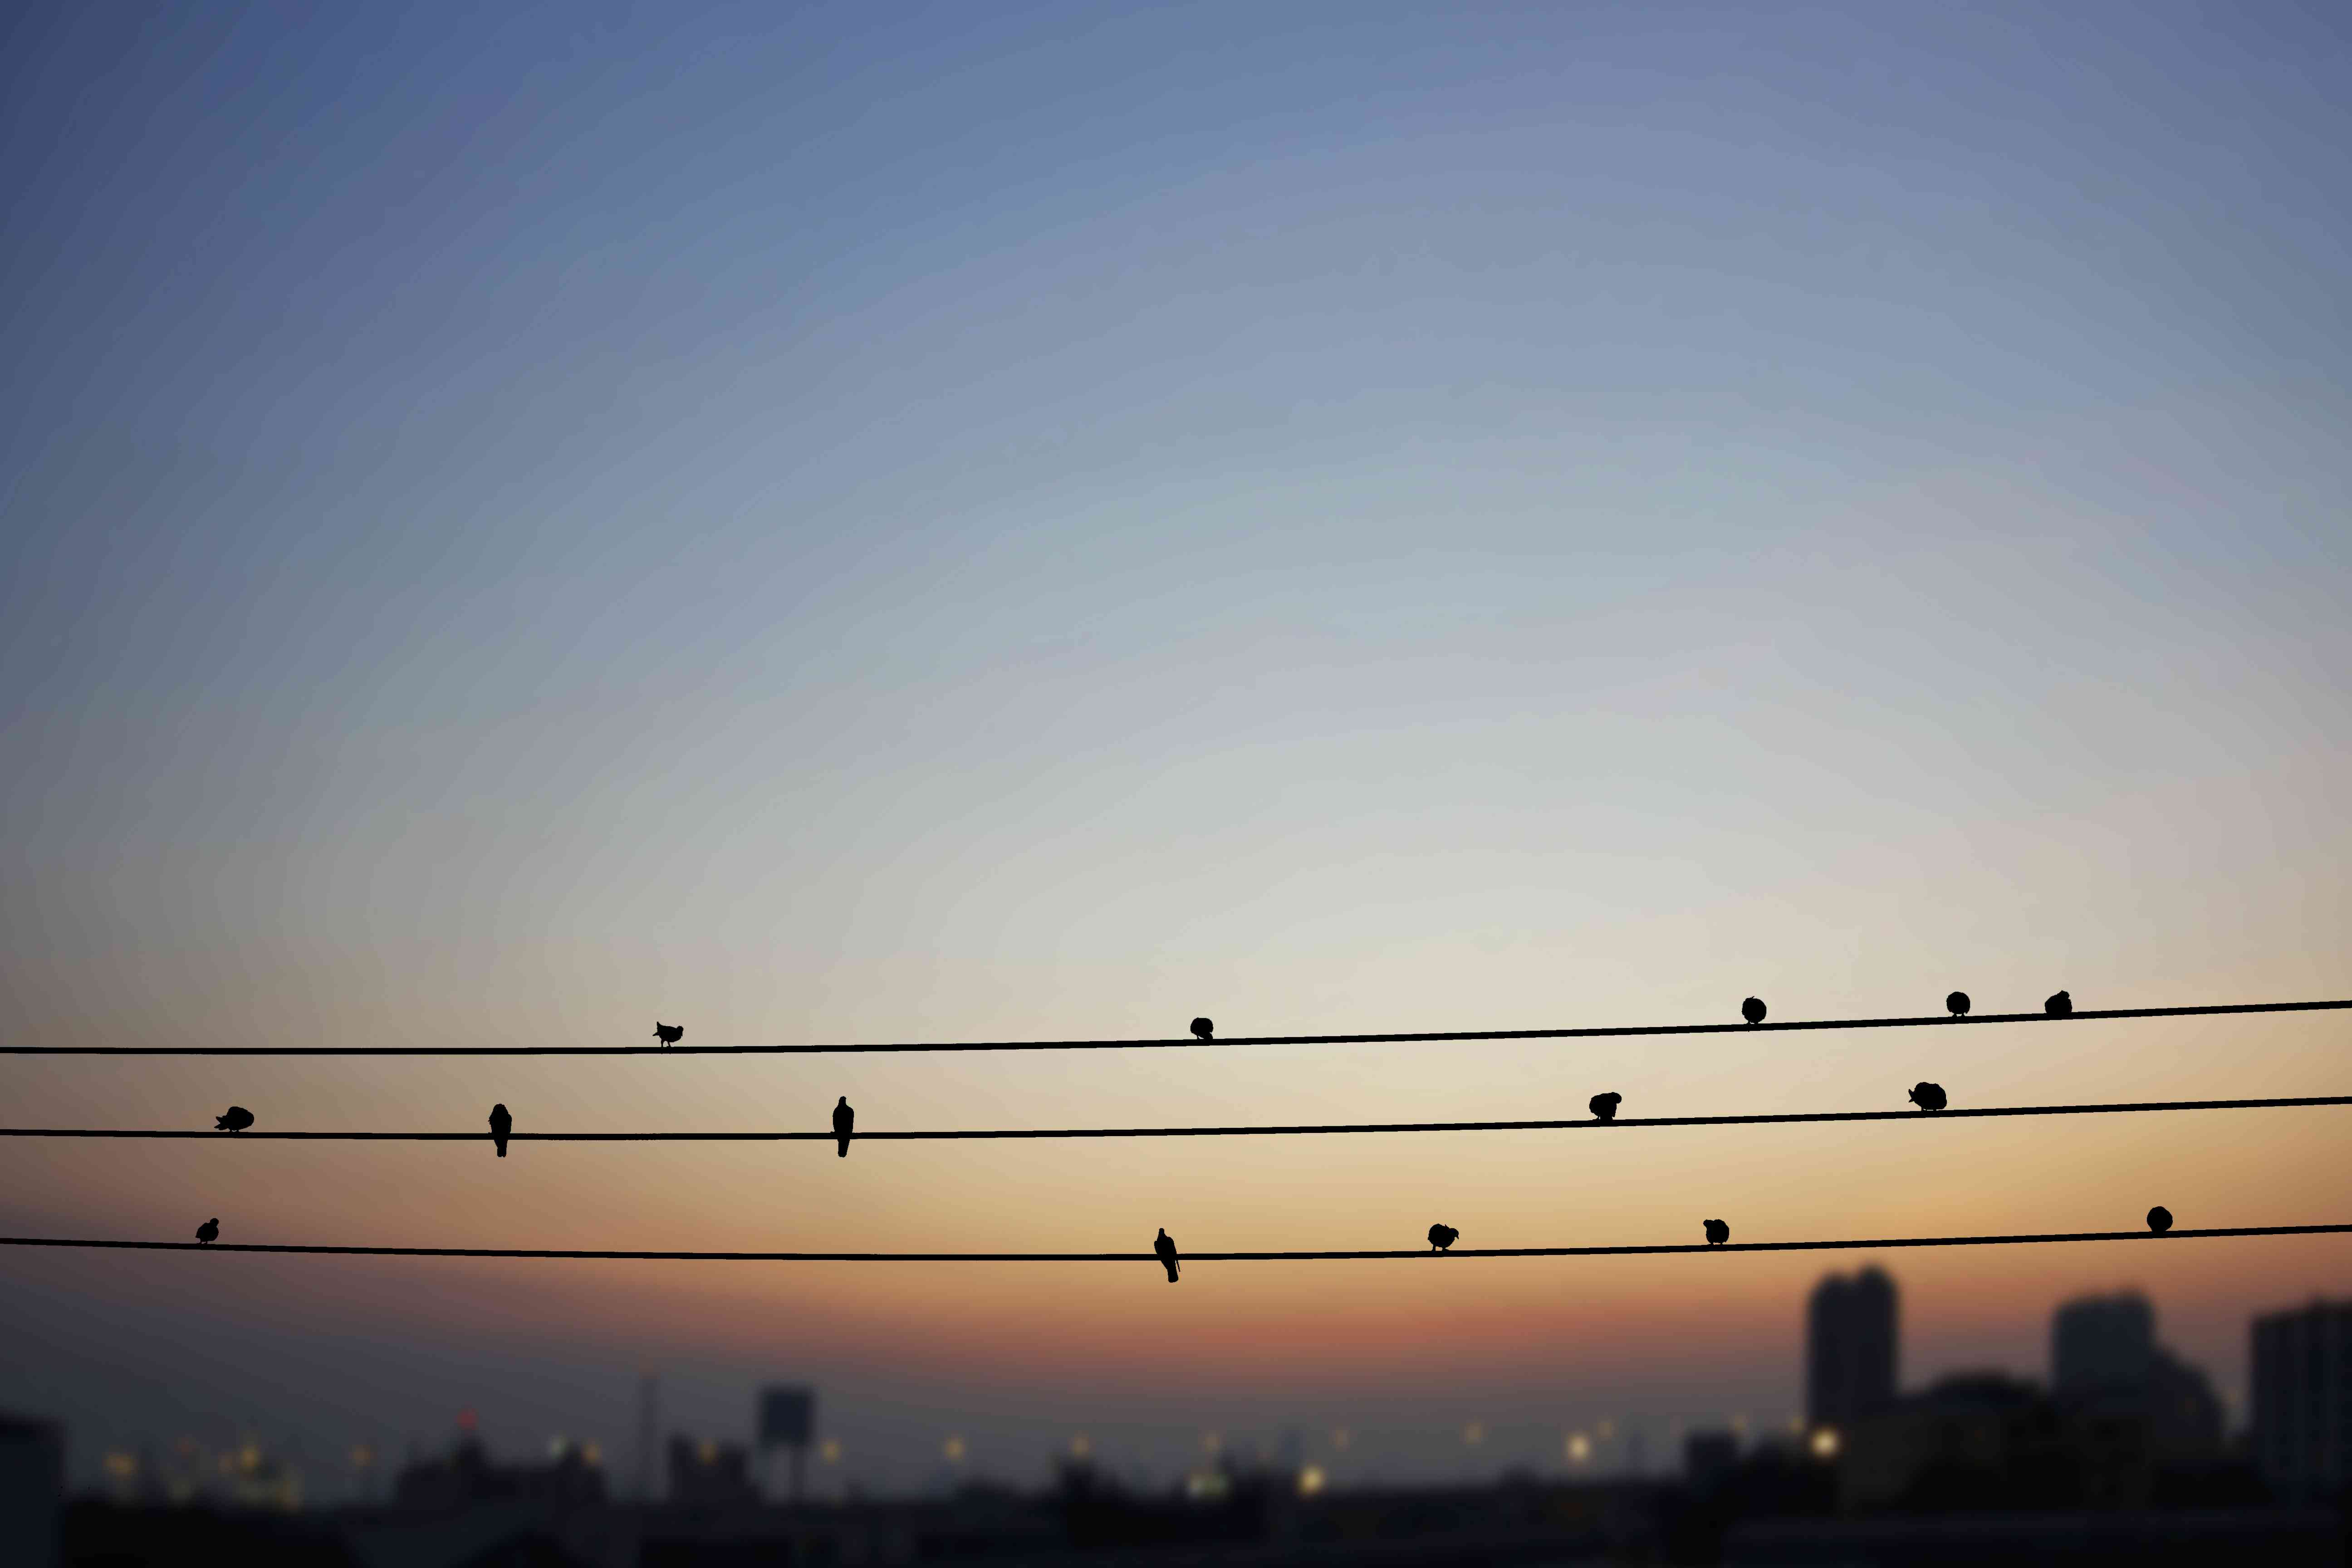 birds on a wire overlooking a city at twilight